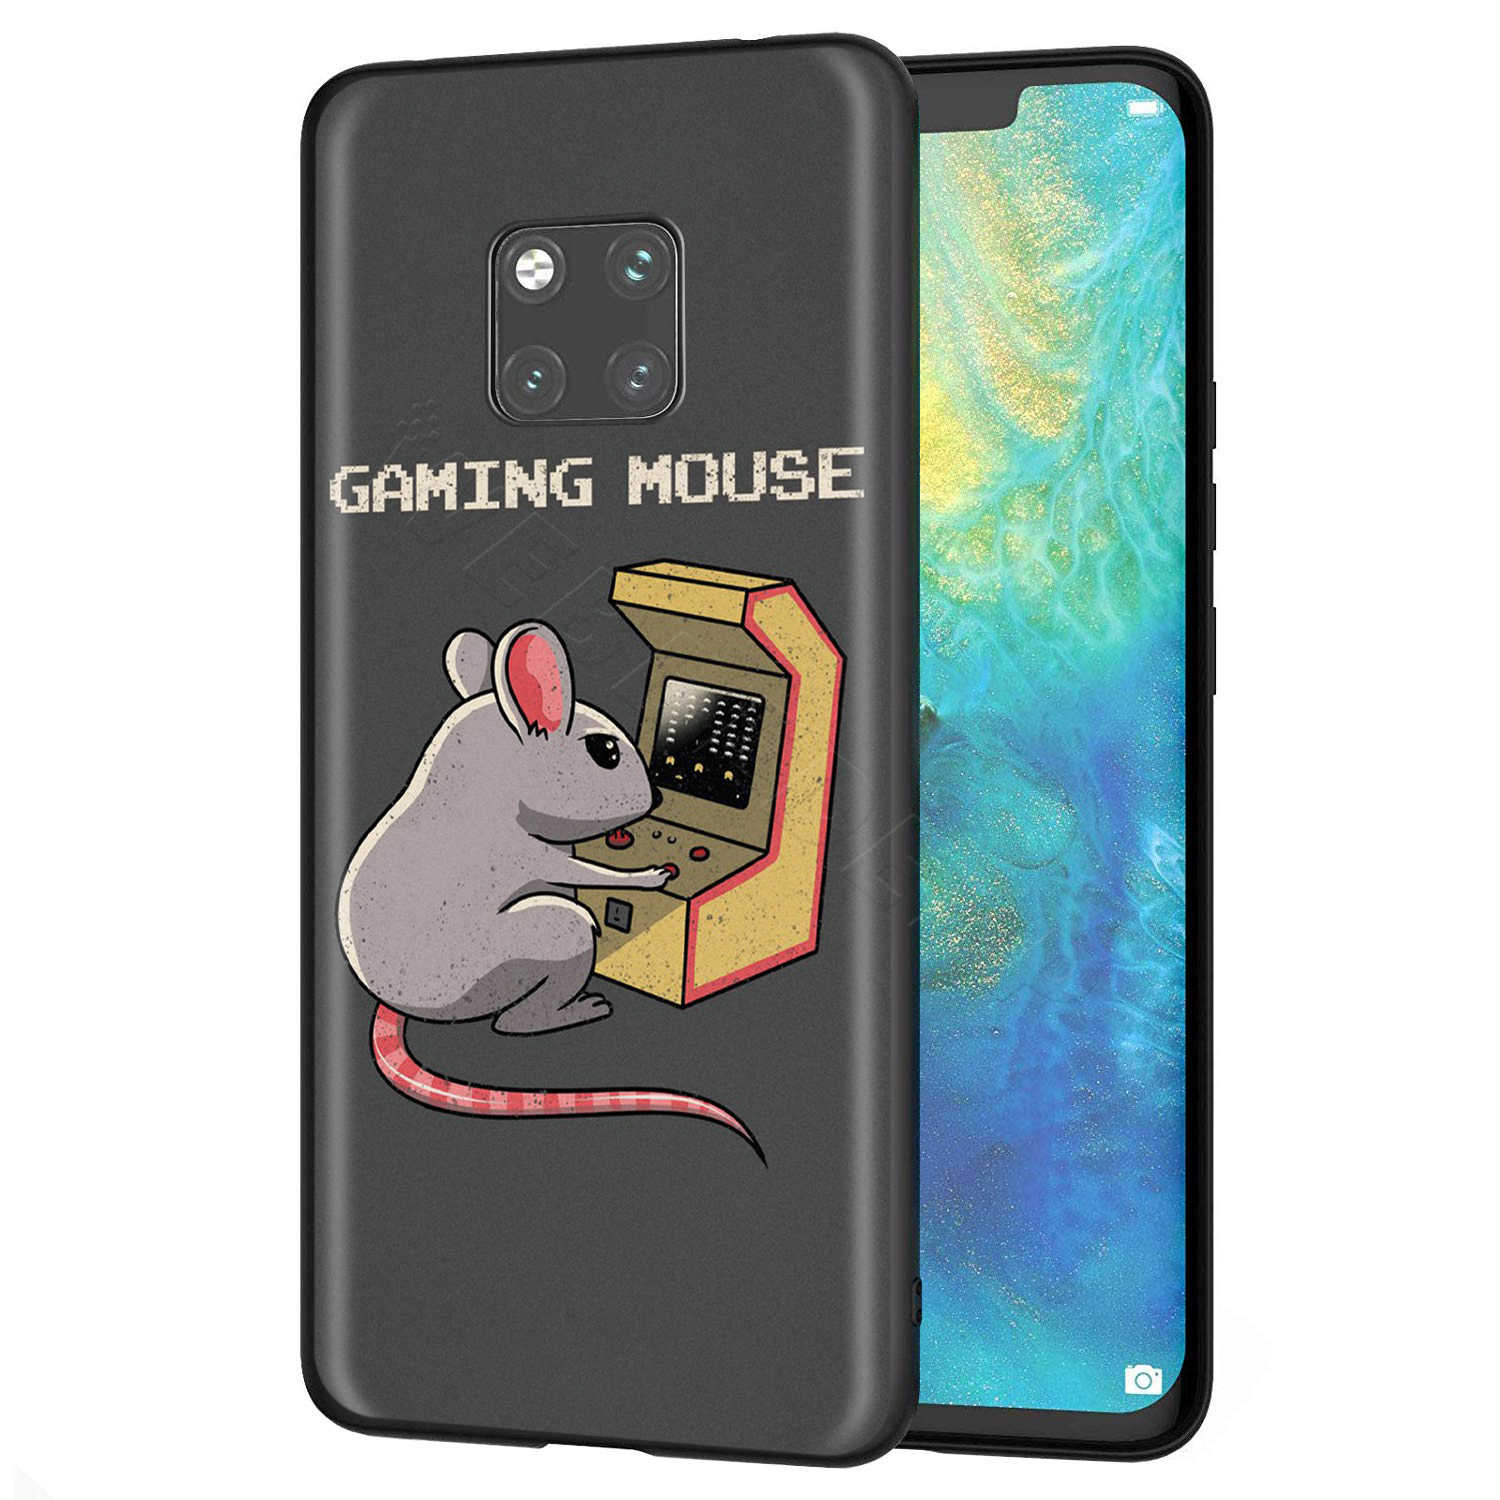 Webbedepp Cute Mouse Case for Huawei Honor 6A 7A 7C 7X 8 8X 8C 9 9X 10 20 Lite Pro Note View